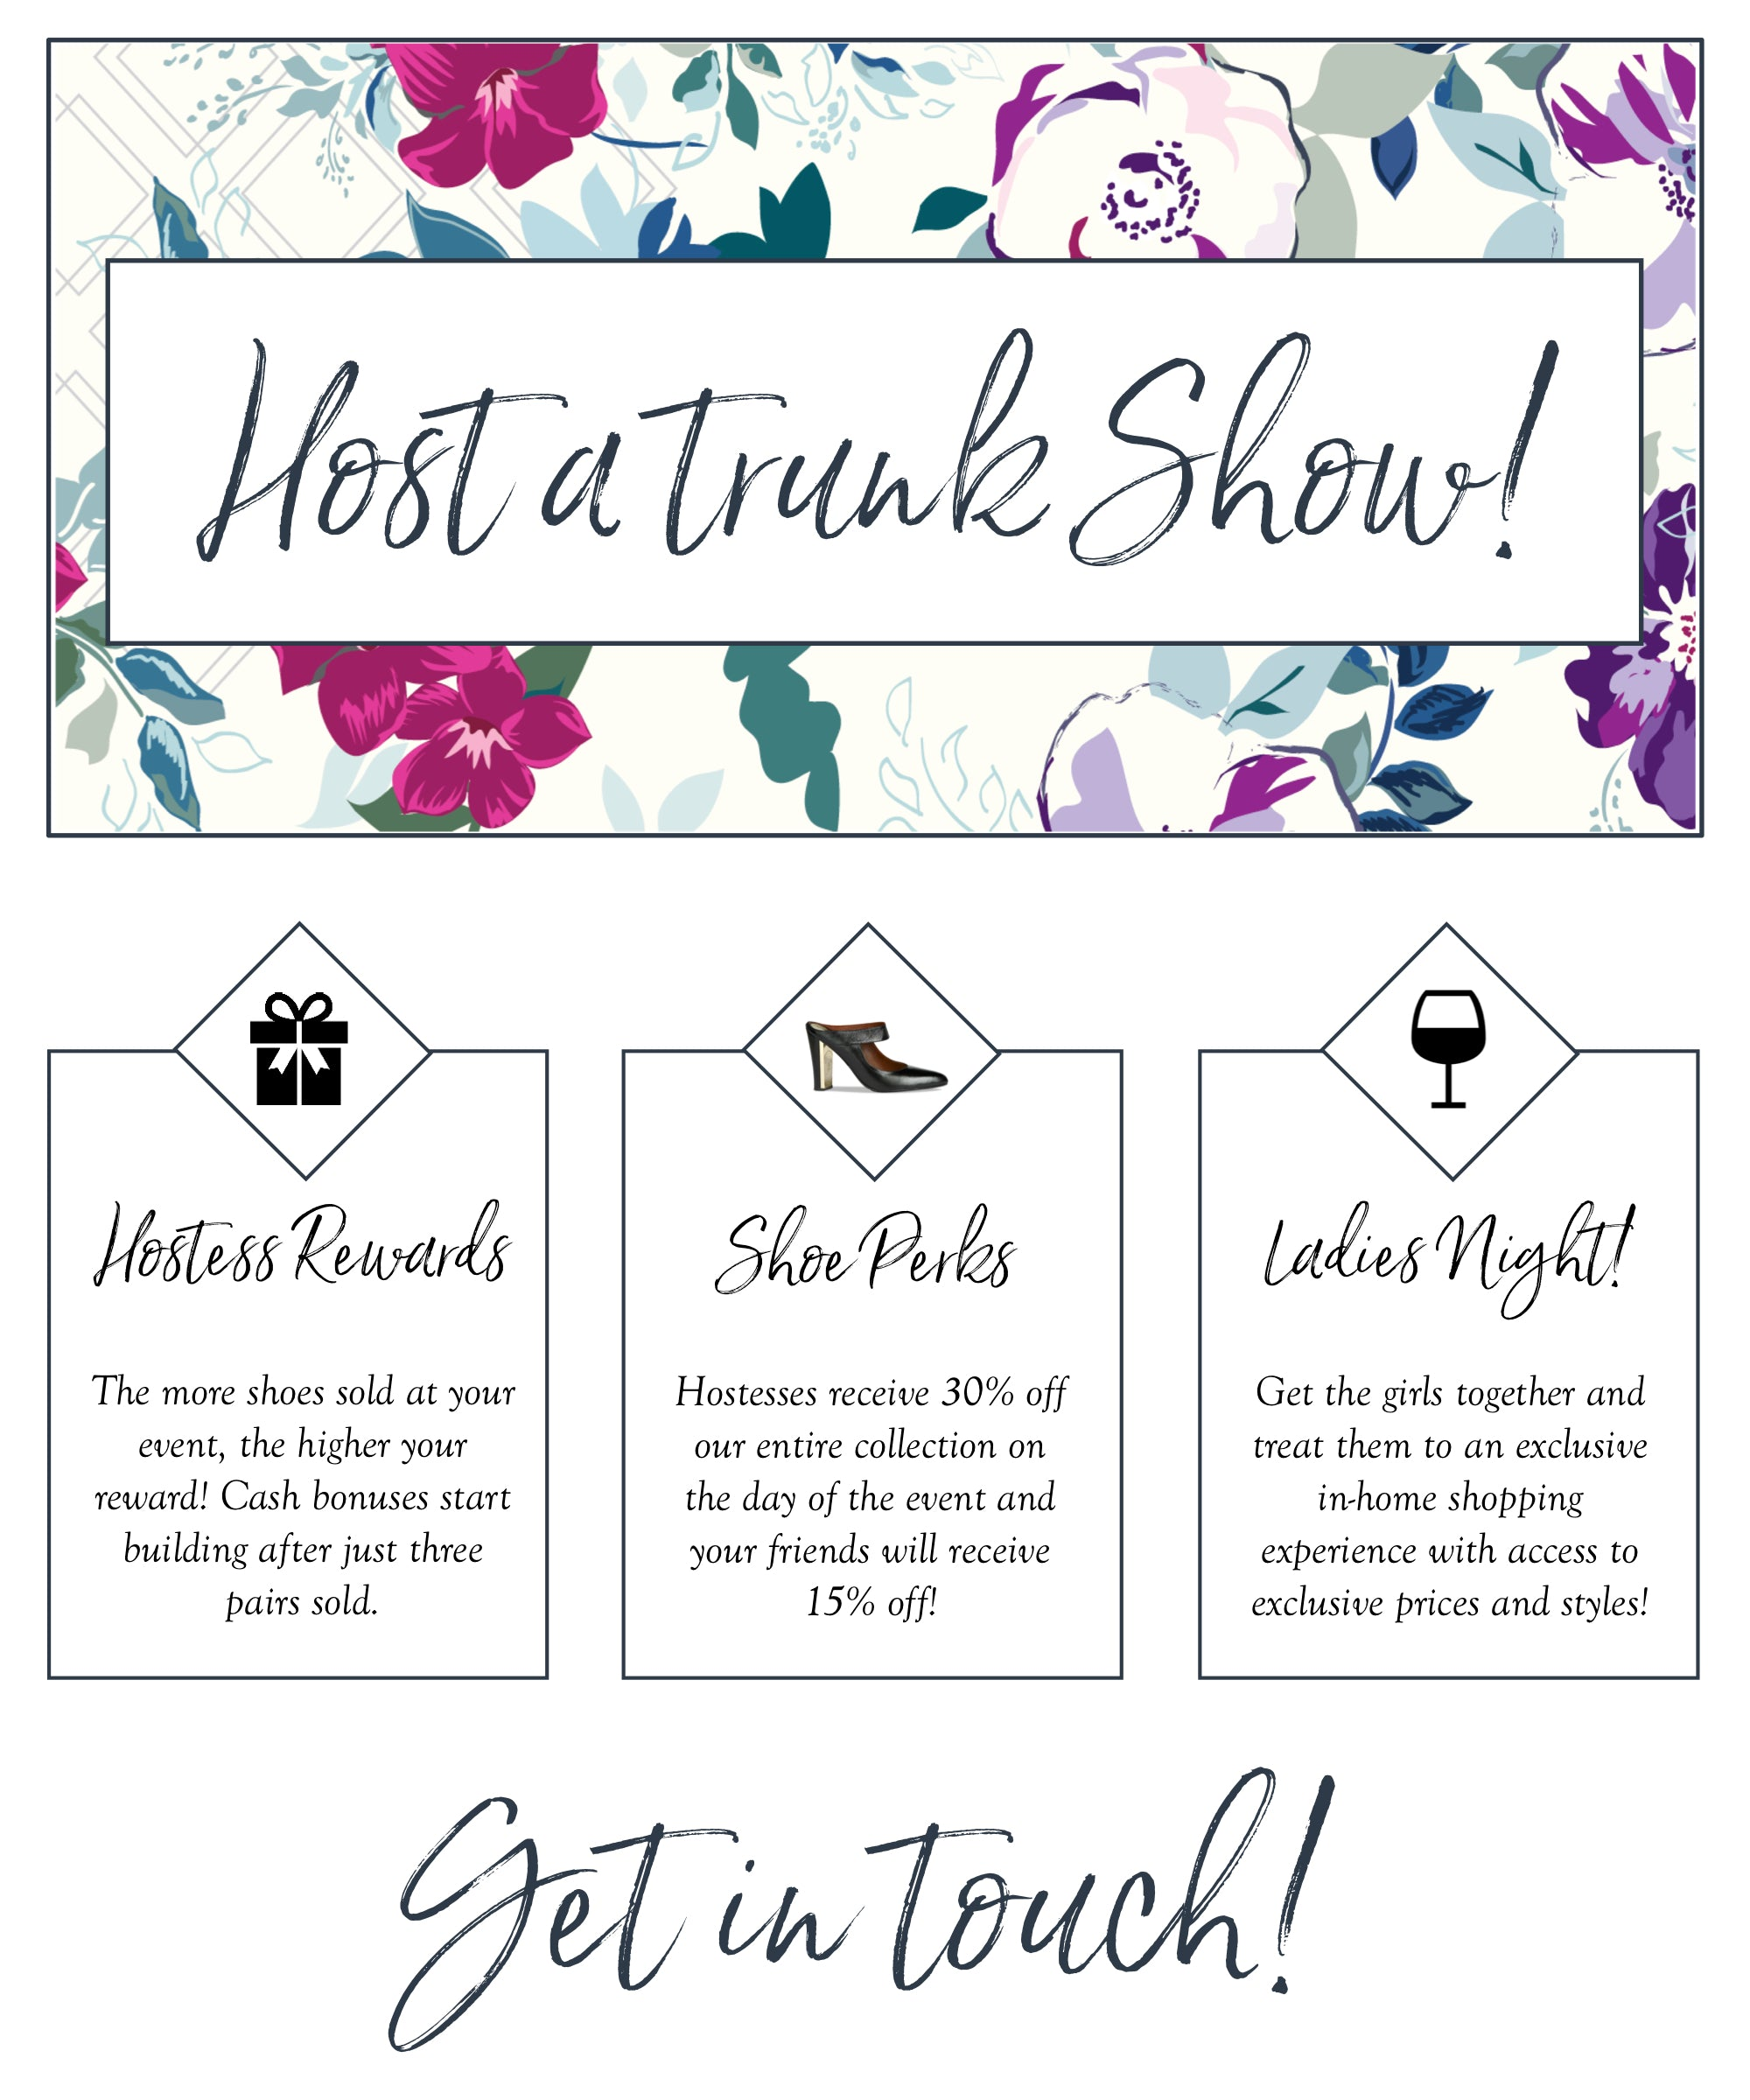 JJUSA Trunk Show In-Home Events